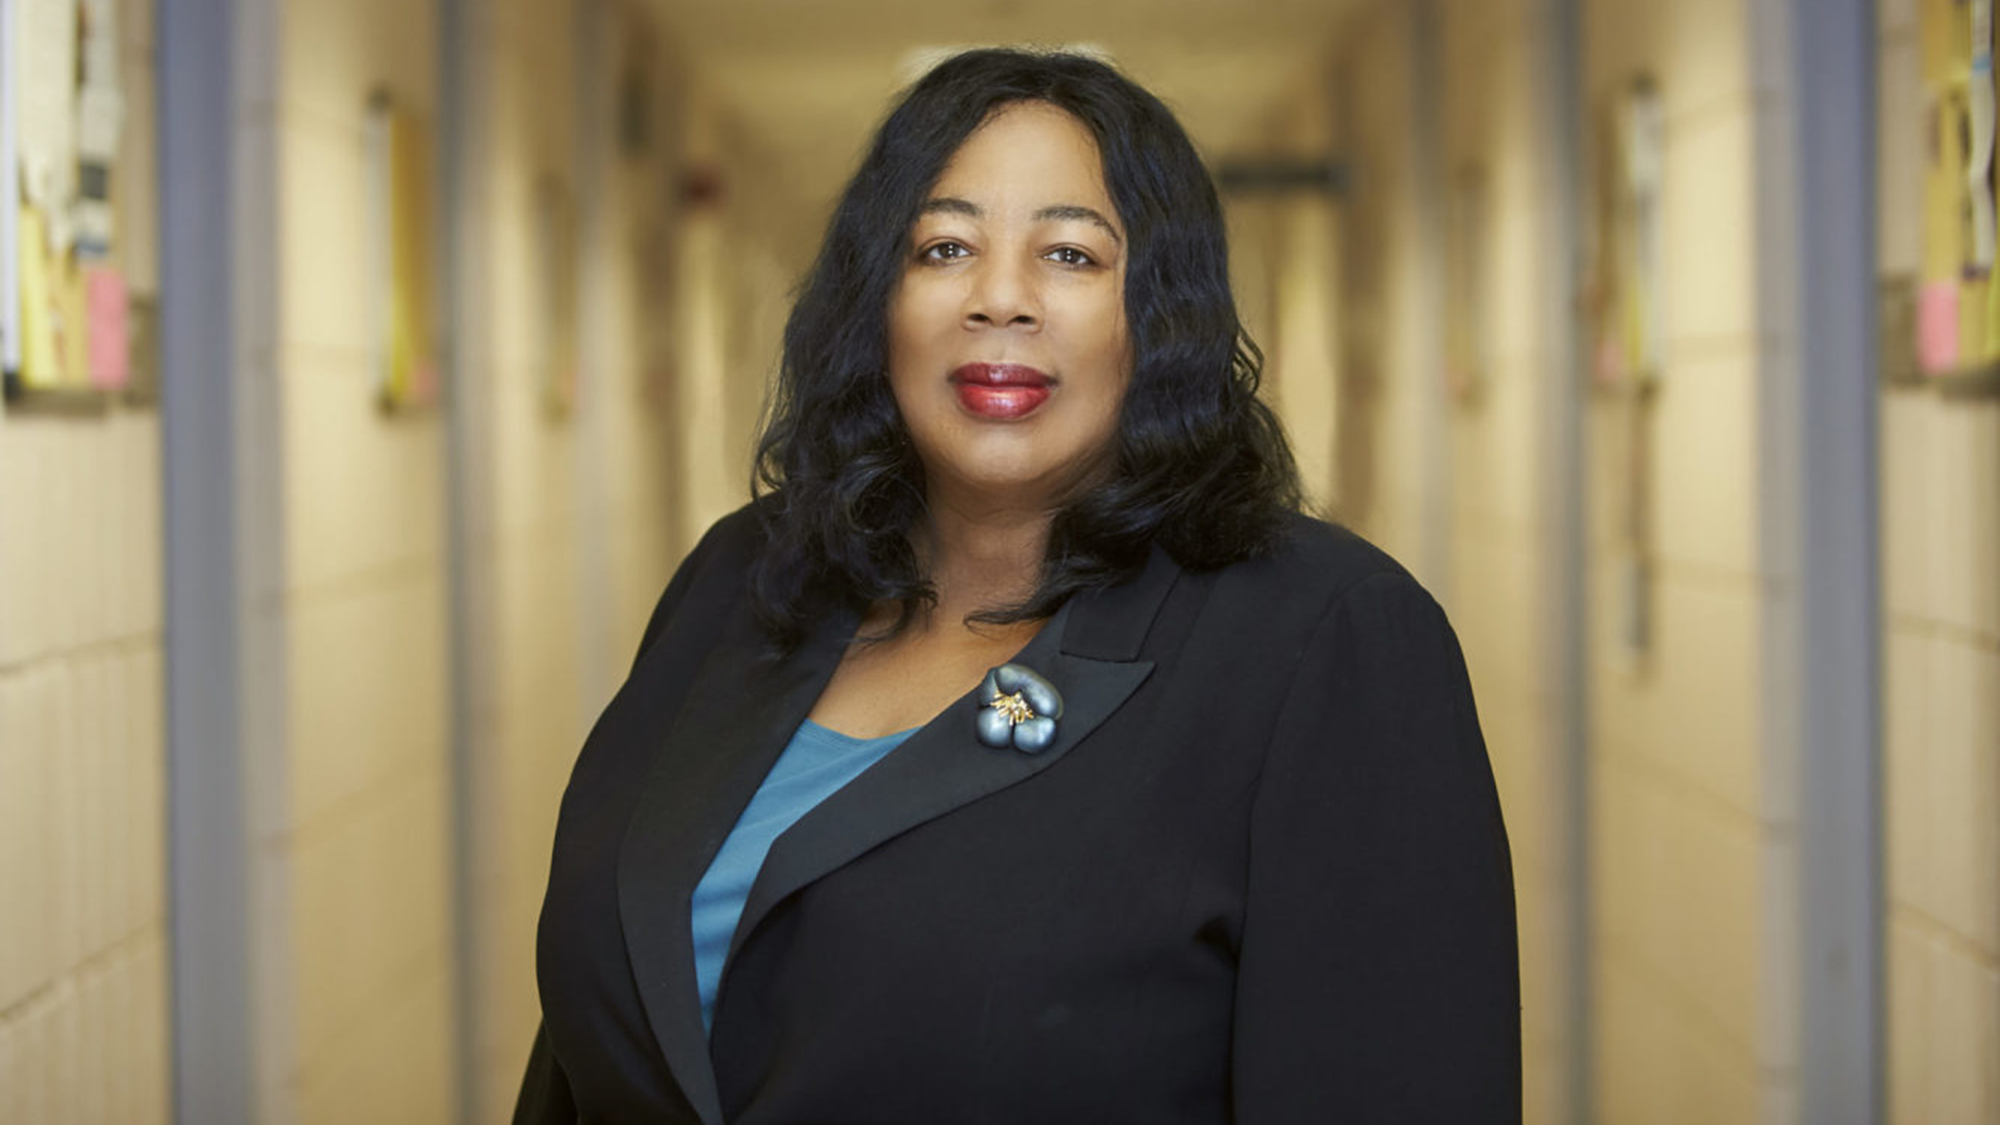 Headshot of Harriet Washington, a Black Woman with black hair down a few inches past her shoulders, wearing a dark blazer over a light blue shirt.